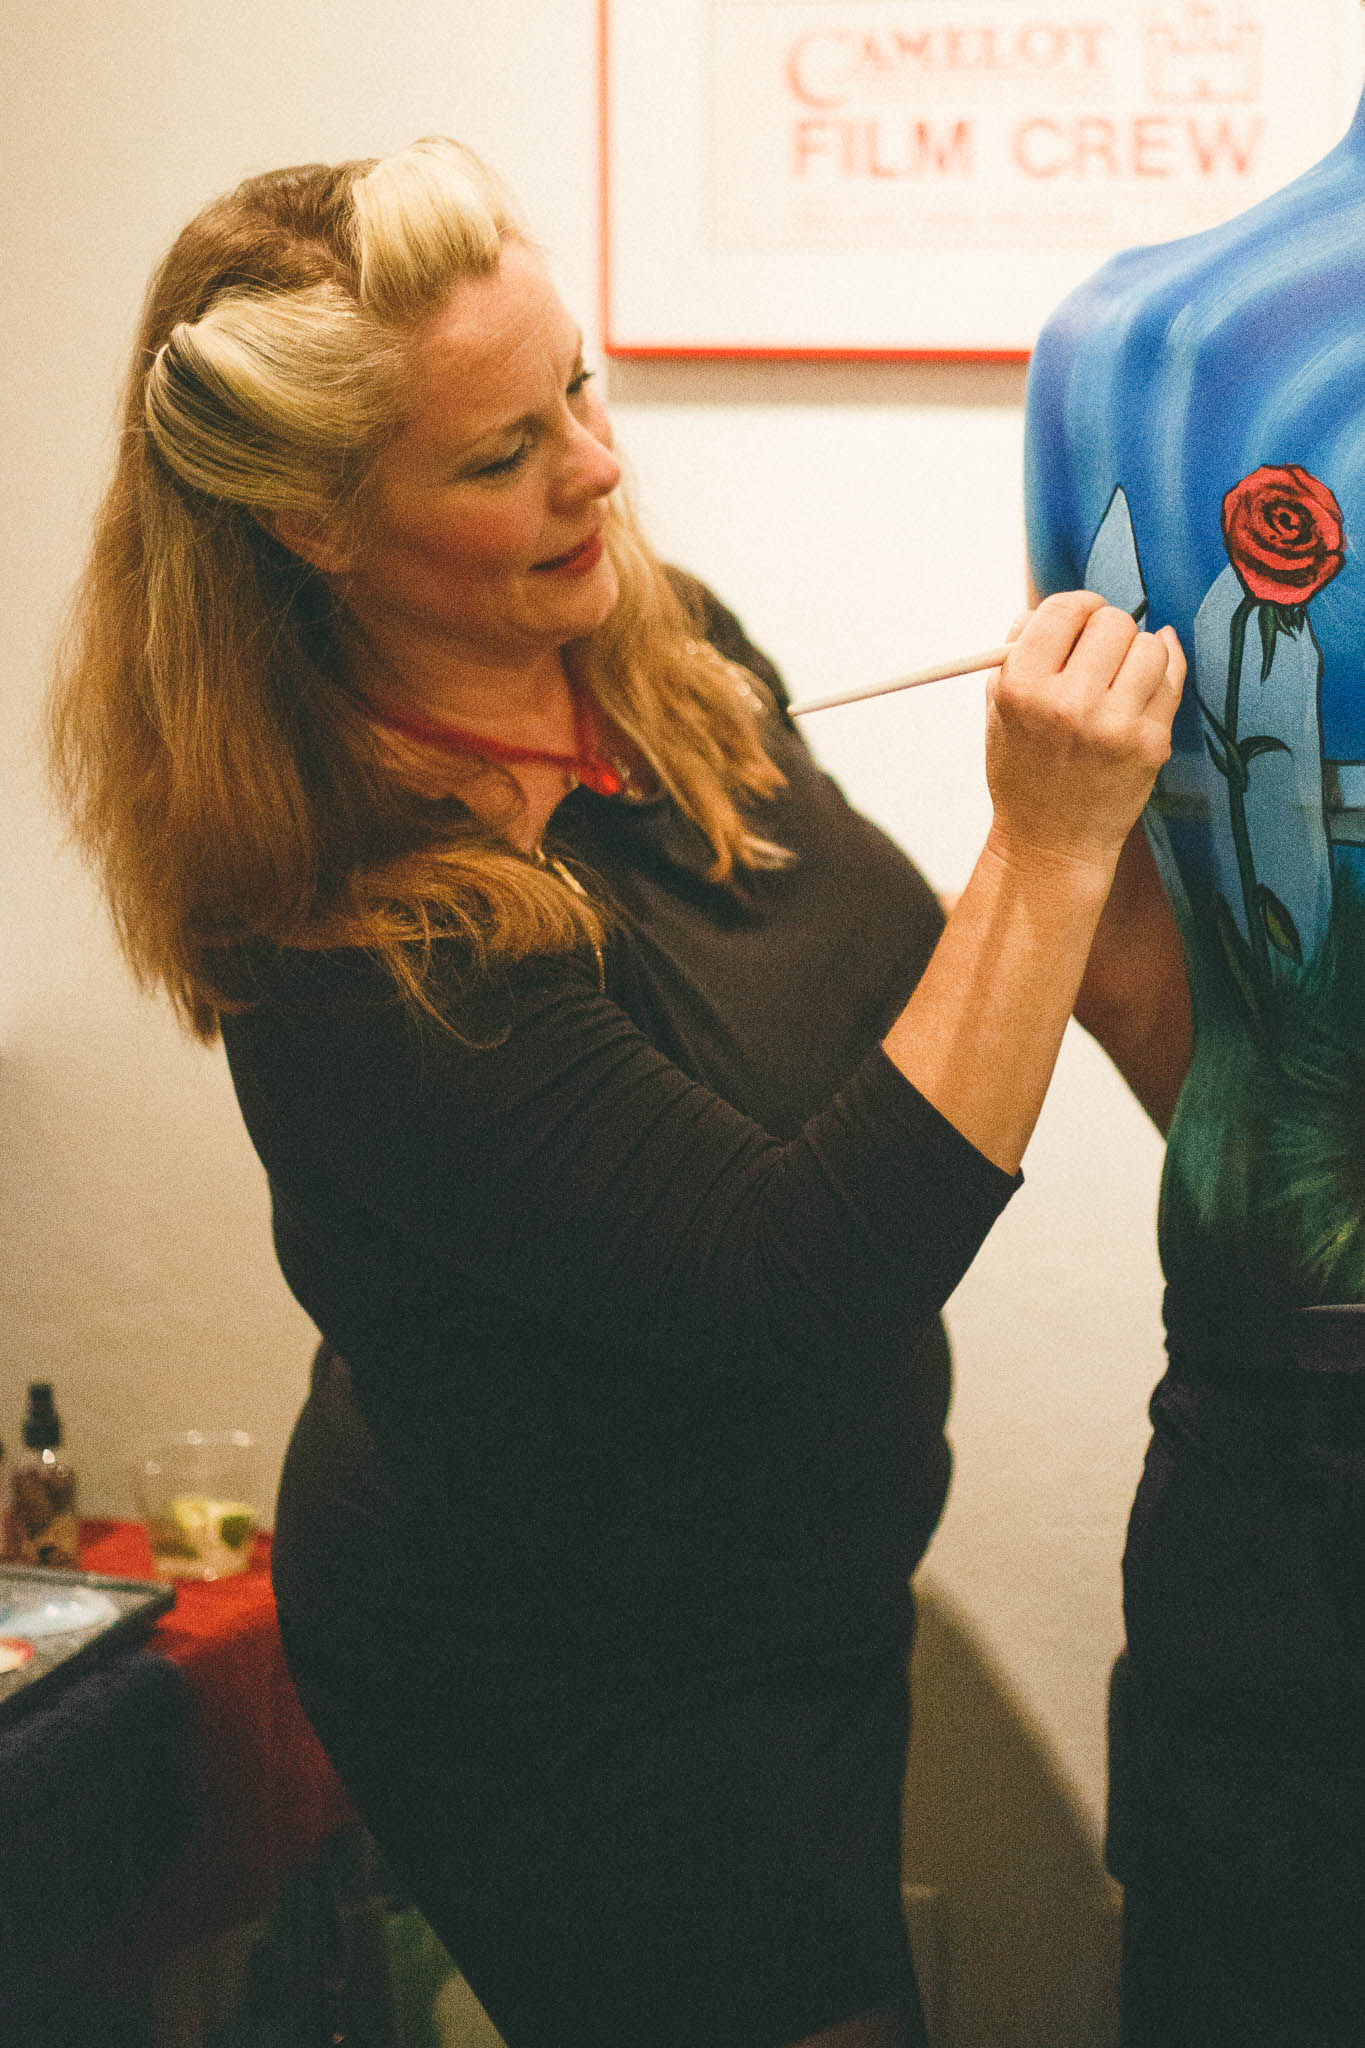 Behind the Scenes with Alison Kenyon of Body Masterpiece Bodyart